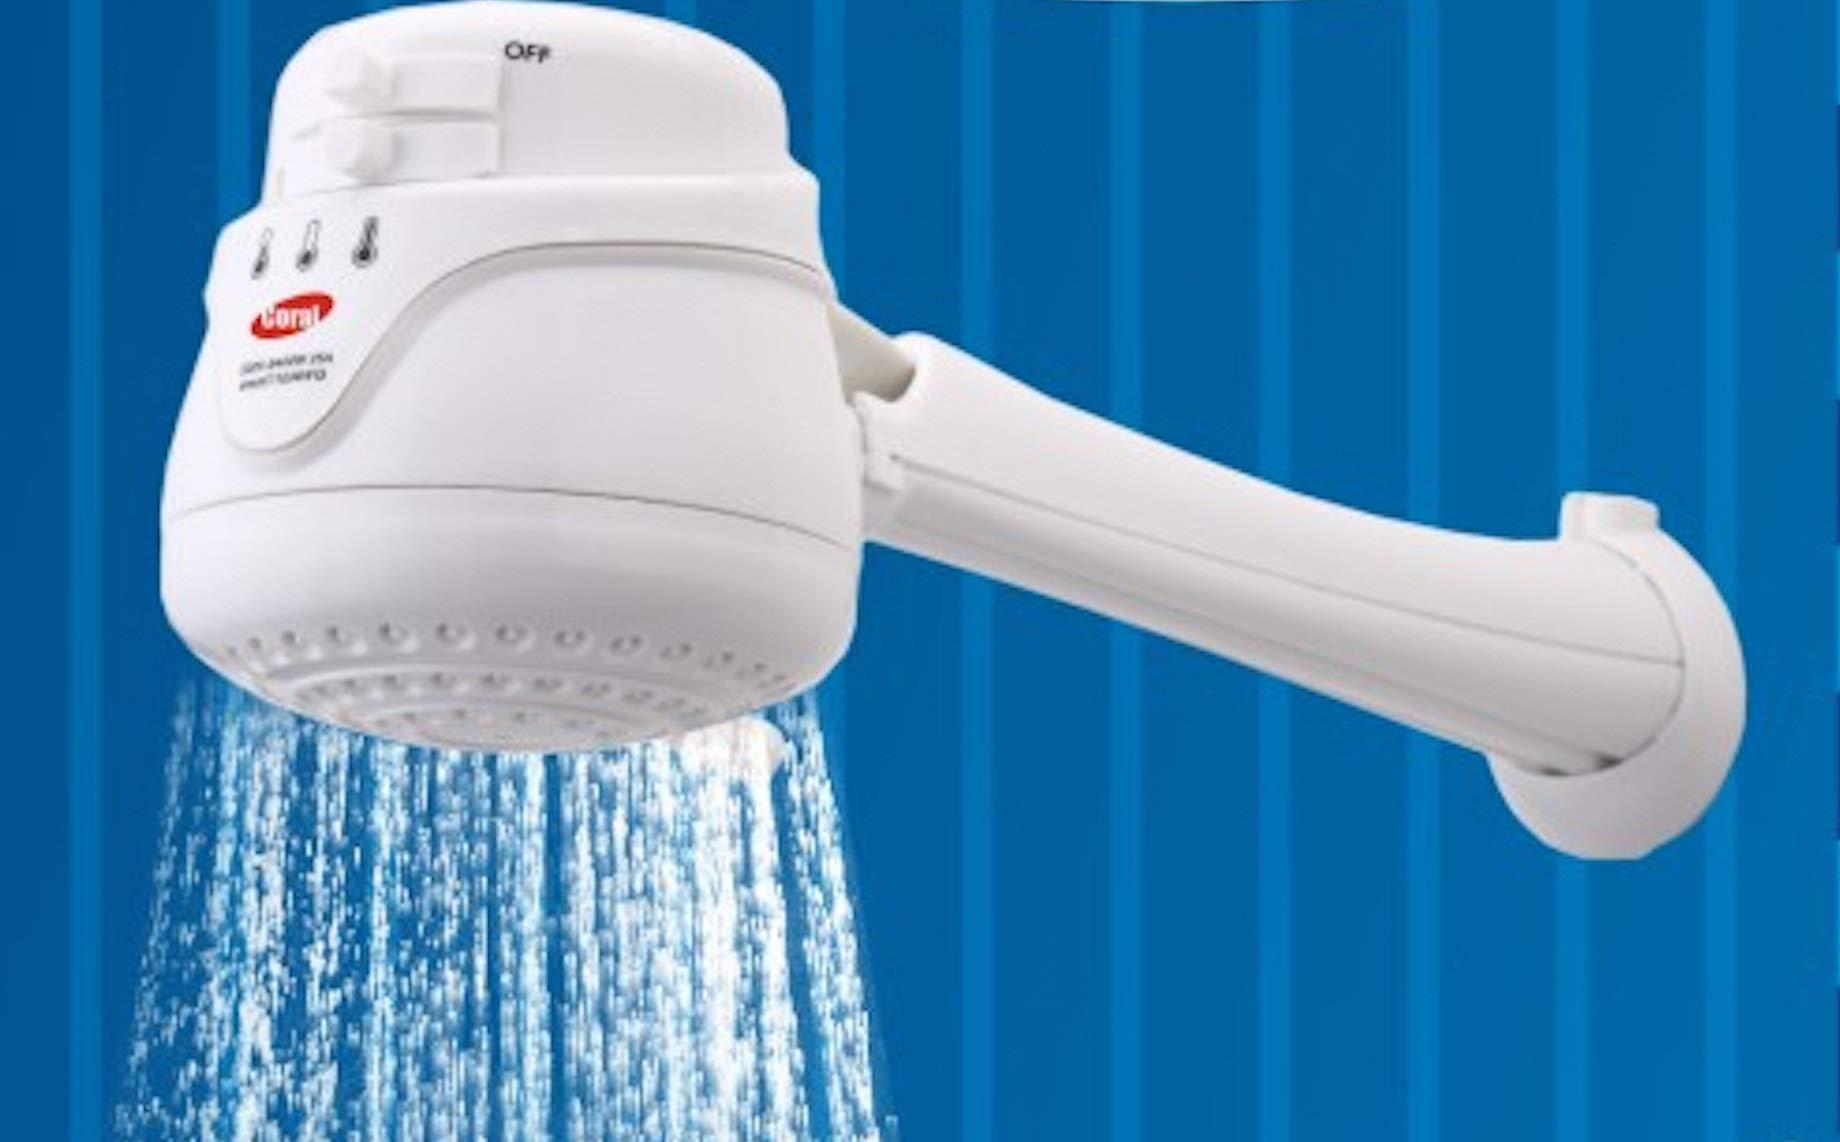 Electric Instant Shower support Included